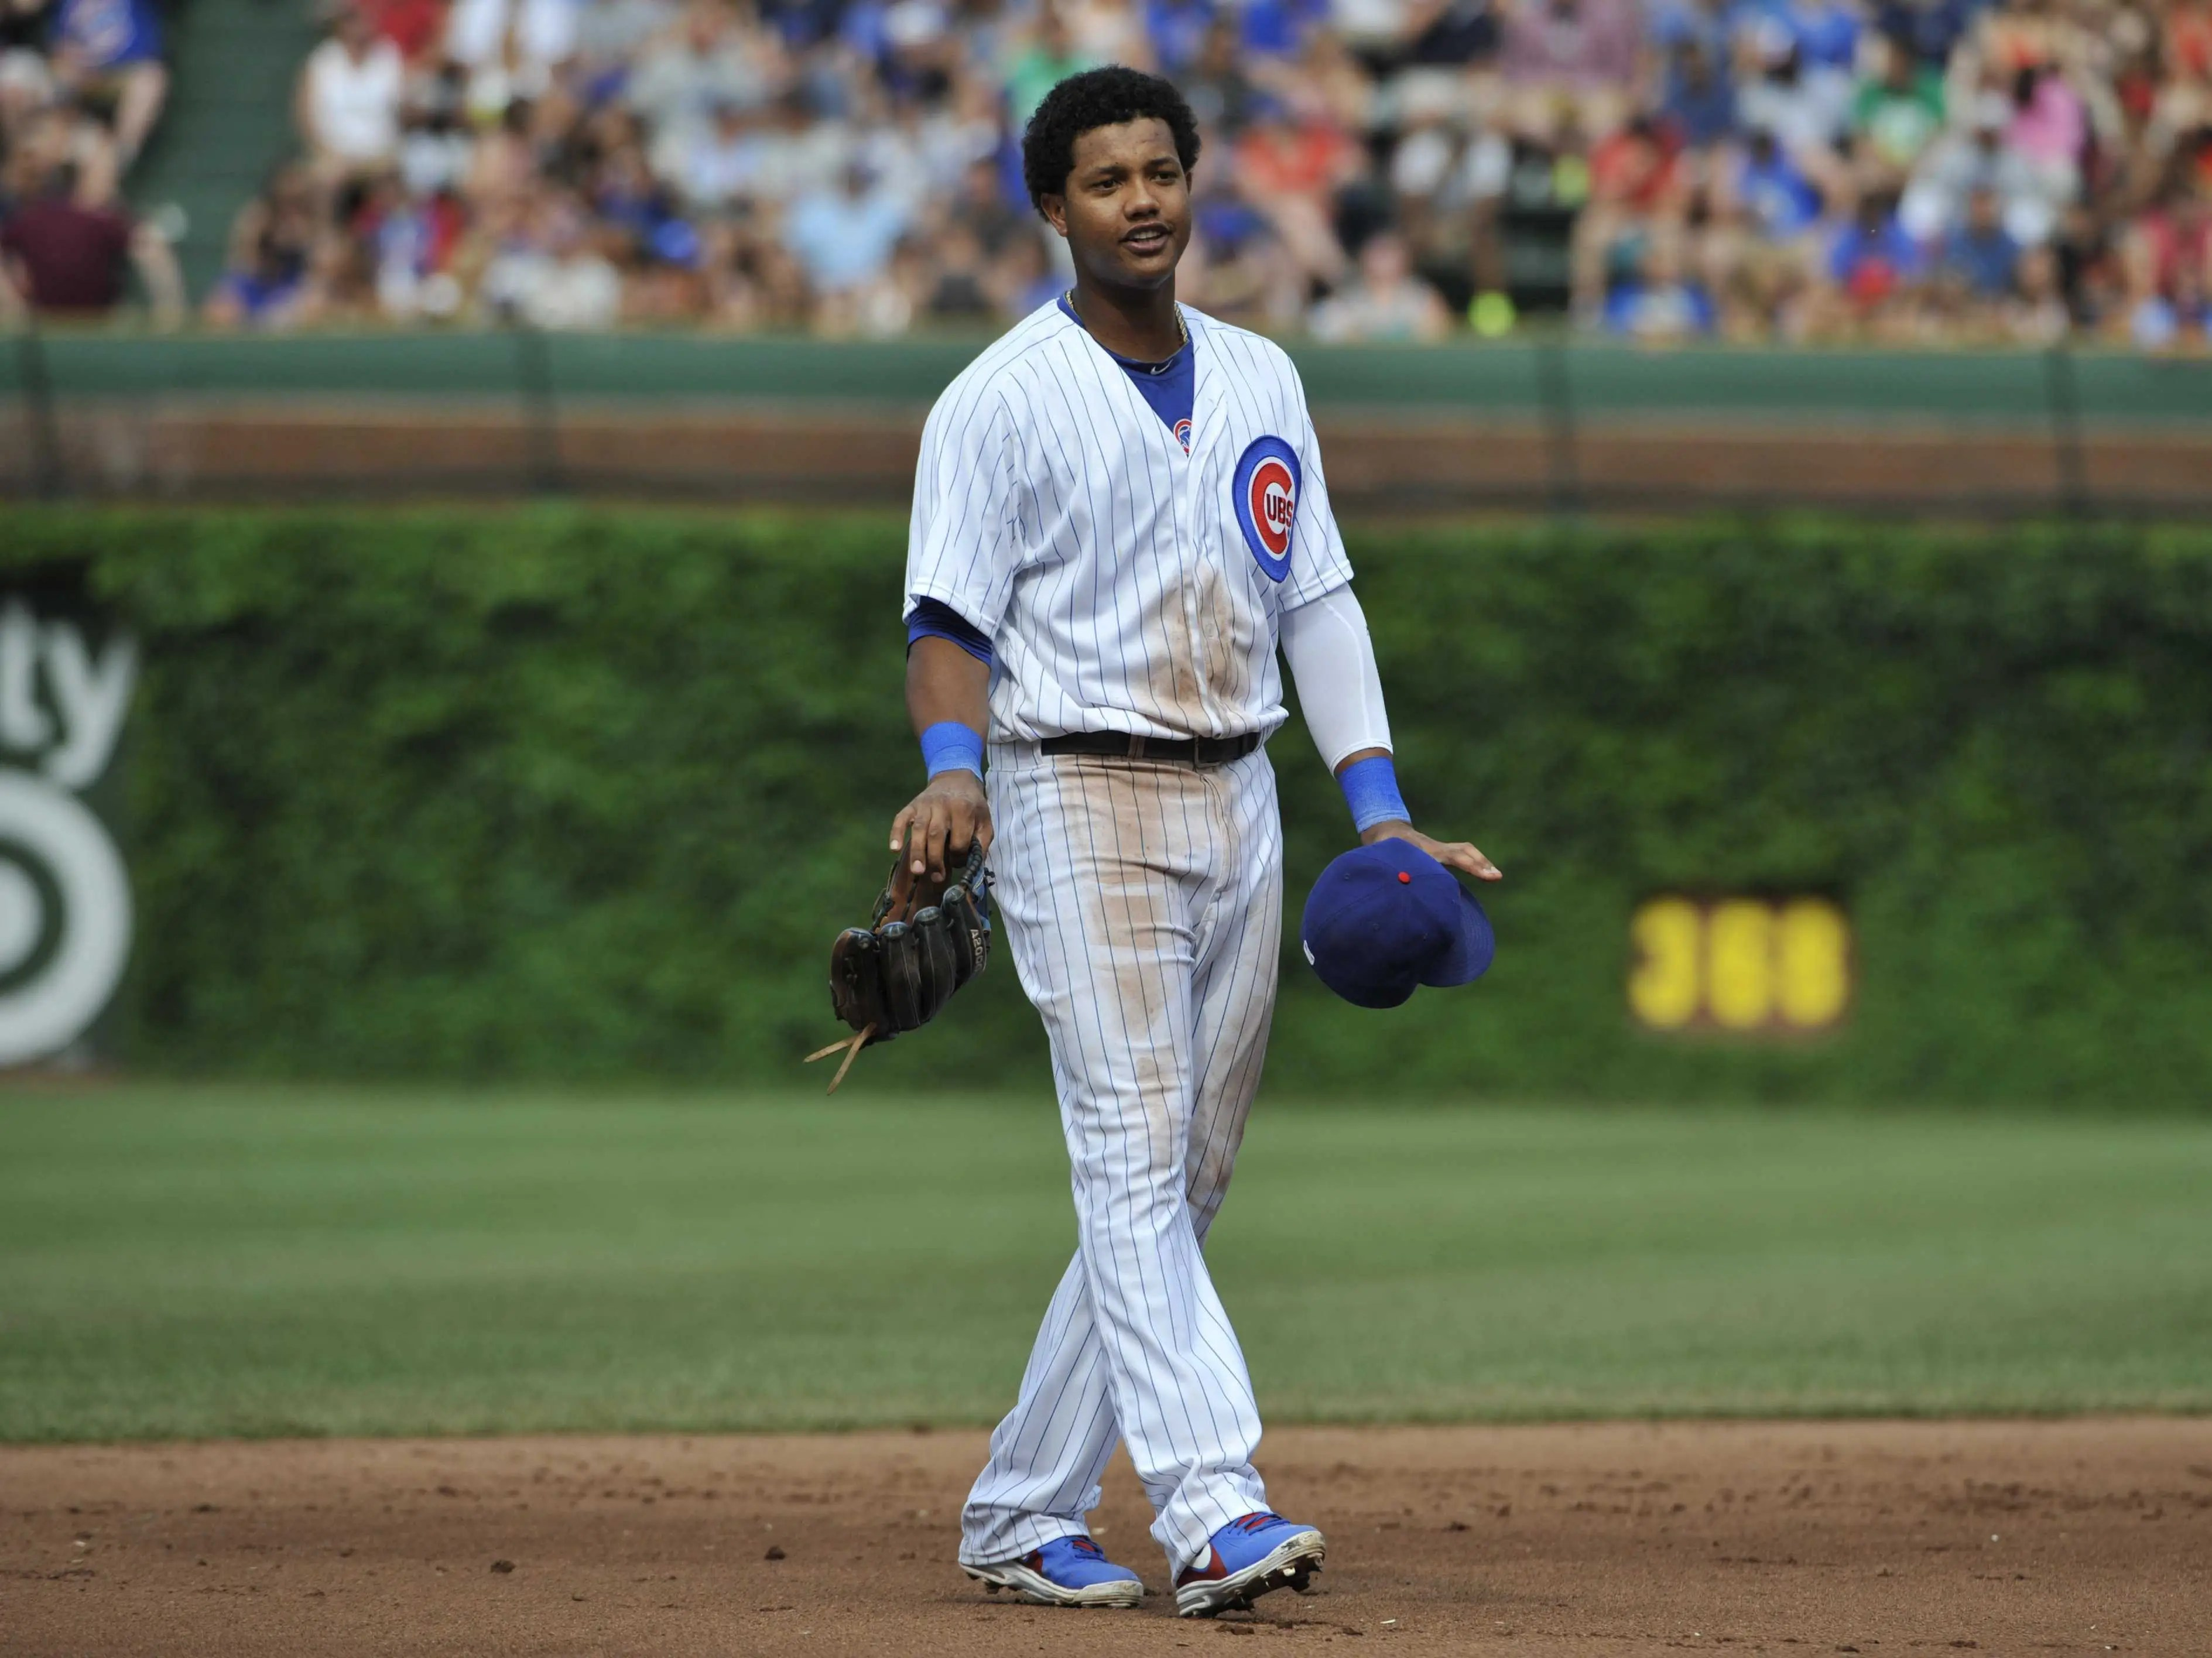 #22 Starlin Castro, Chicago Cubs